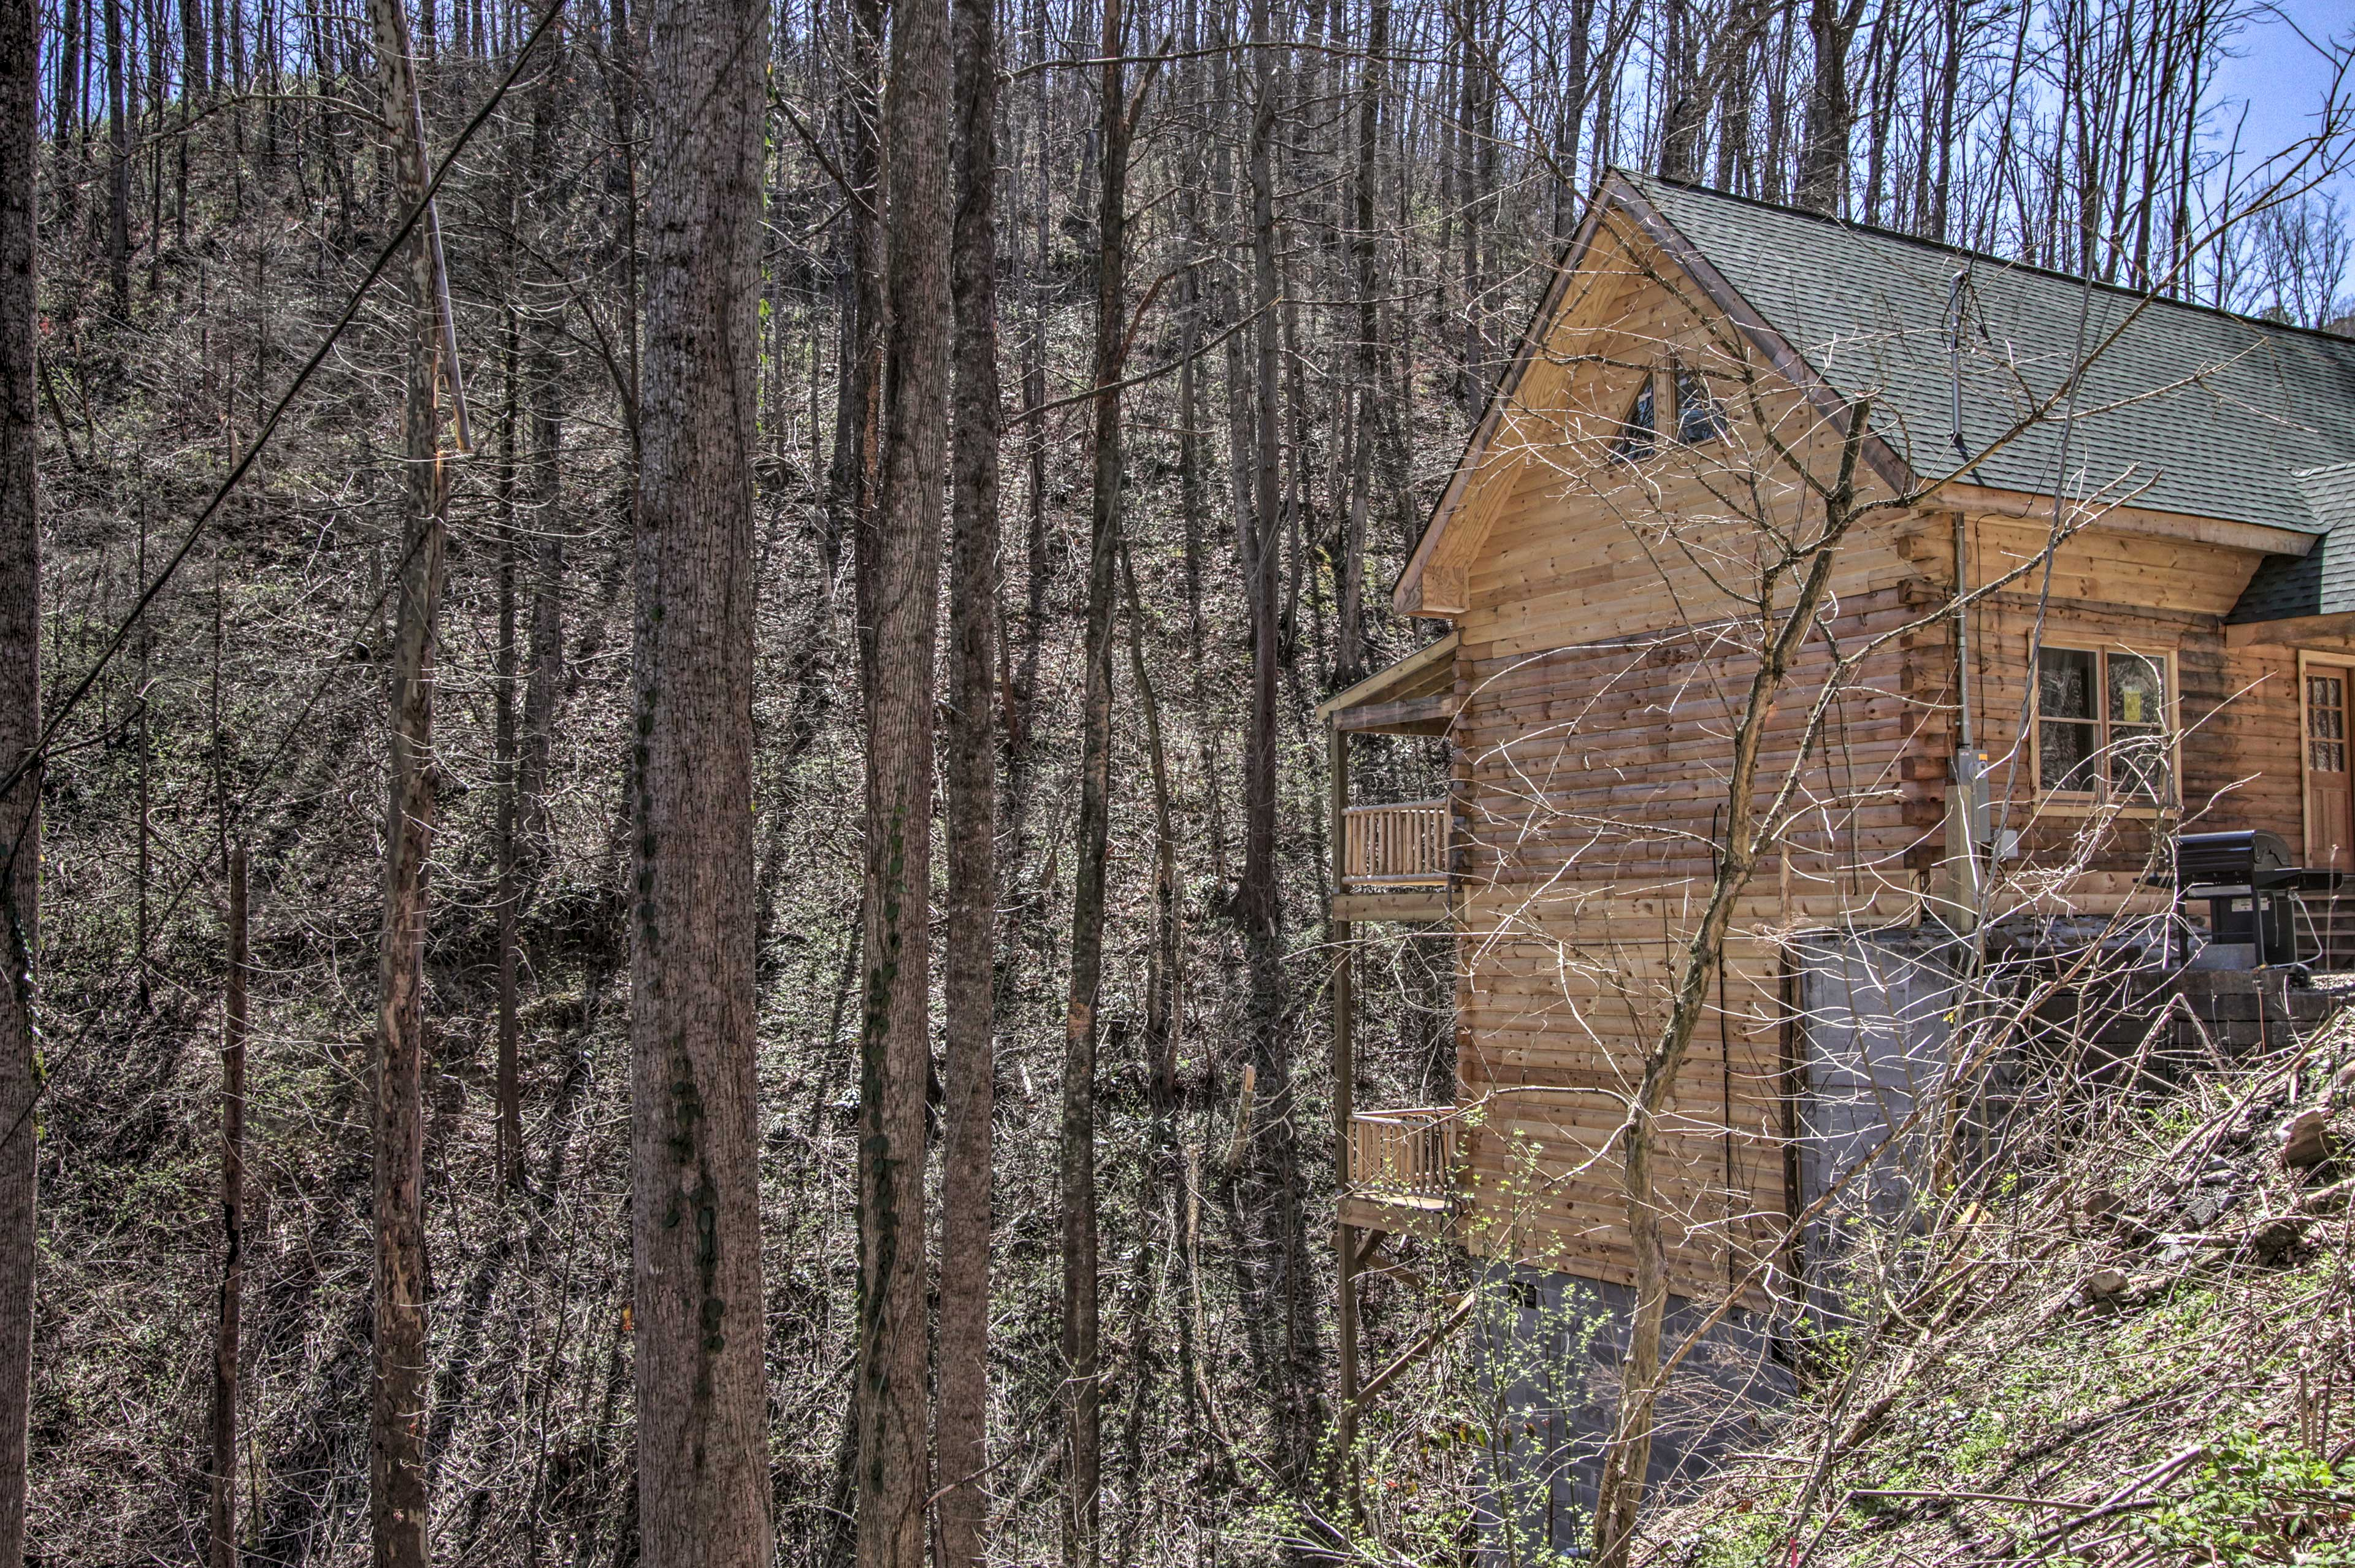 The home sits next to a beautiful ravine in the Chalet Village community.